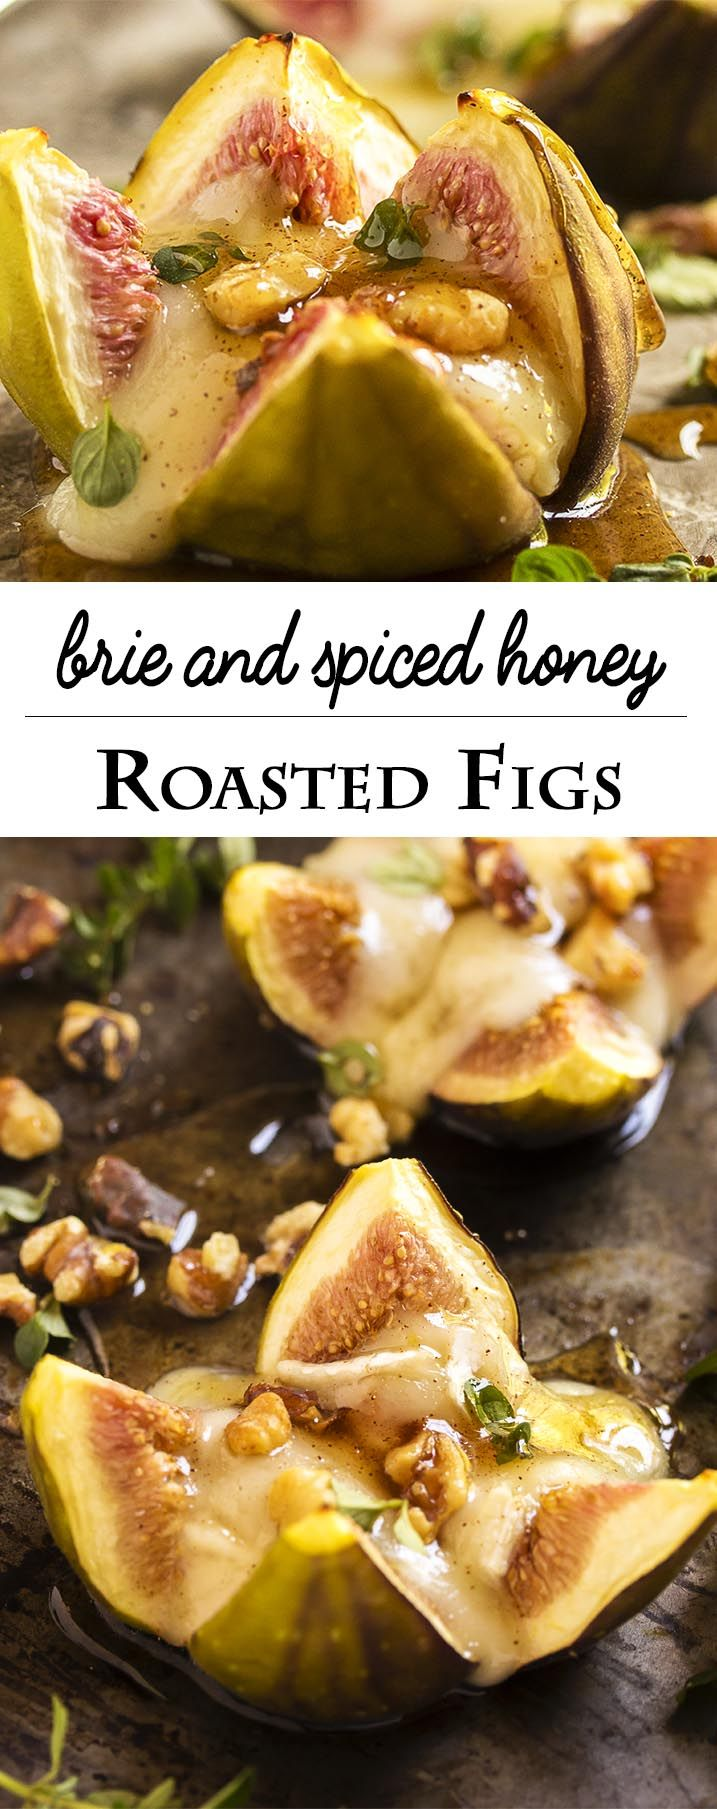 Fig Appetizer With Brie and Spiced Honey Just a Little Bit of Bacon